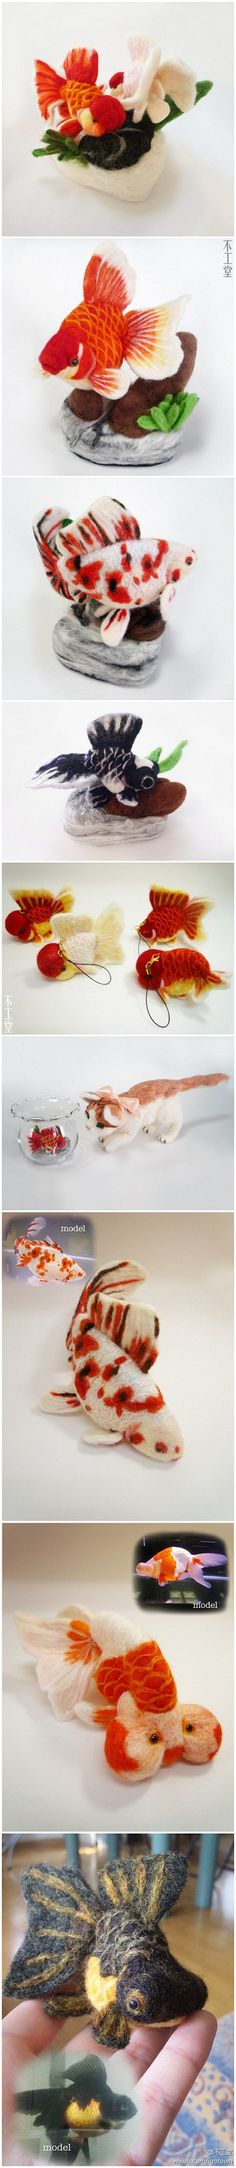 Koi and cats